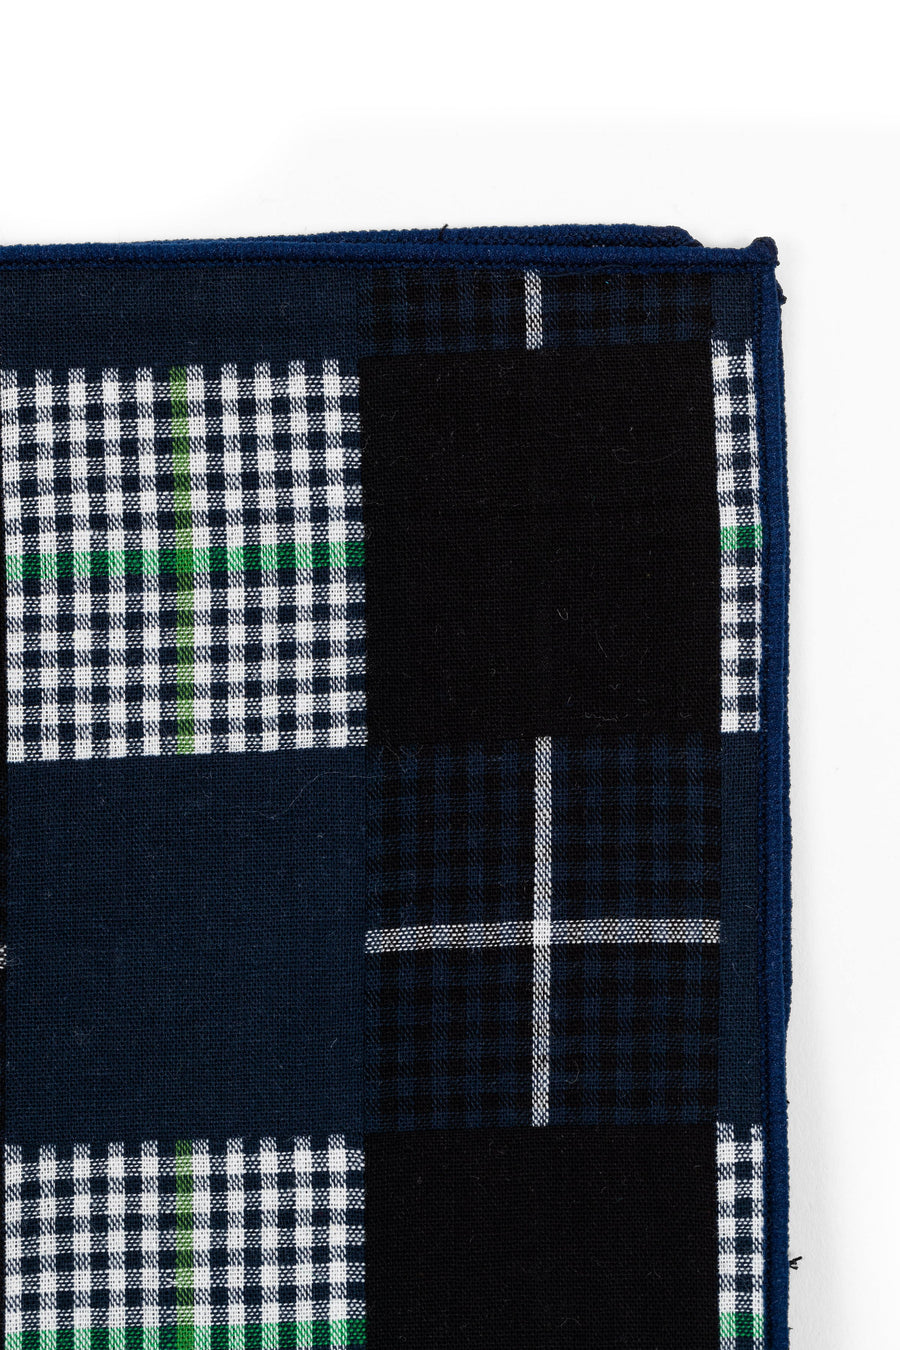 AN IVY Pocket square Patchwork Pocket